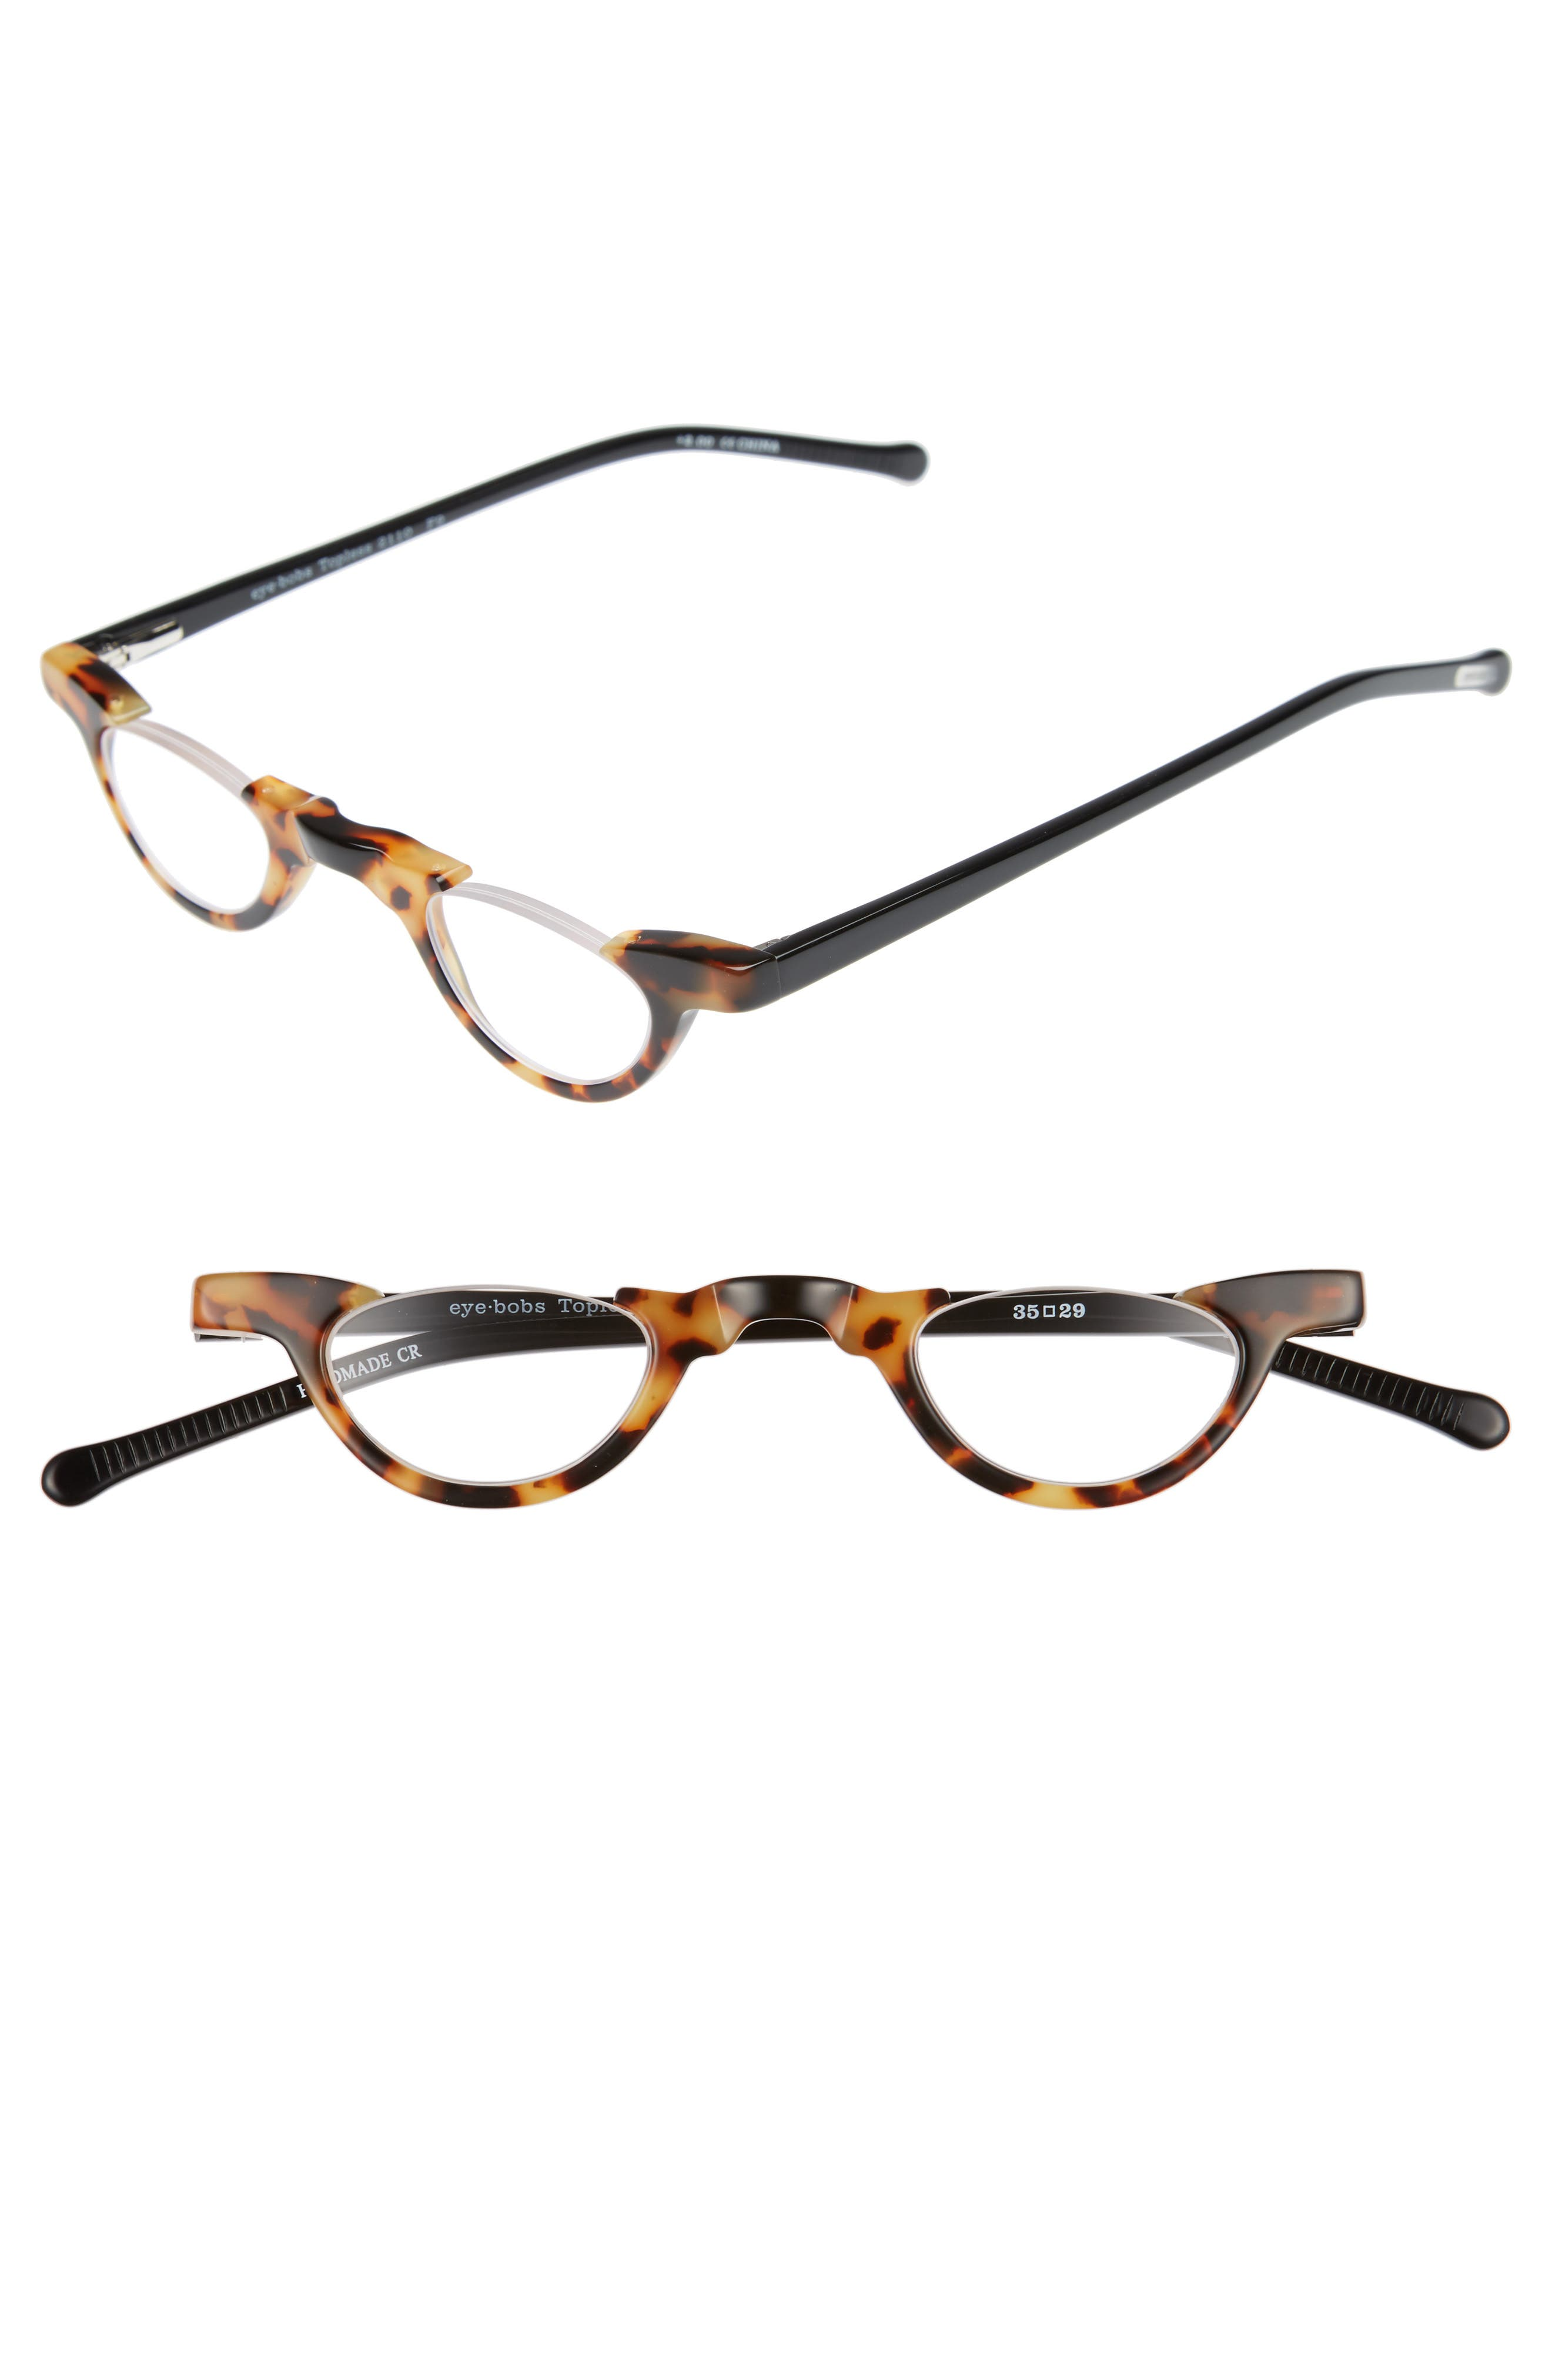 Topless 35mm Reading Glasses,                         Main,                         color, 211